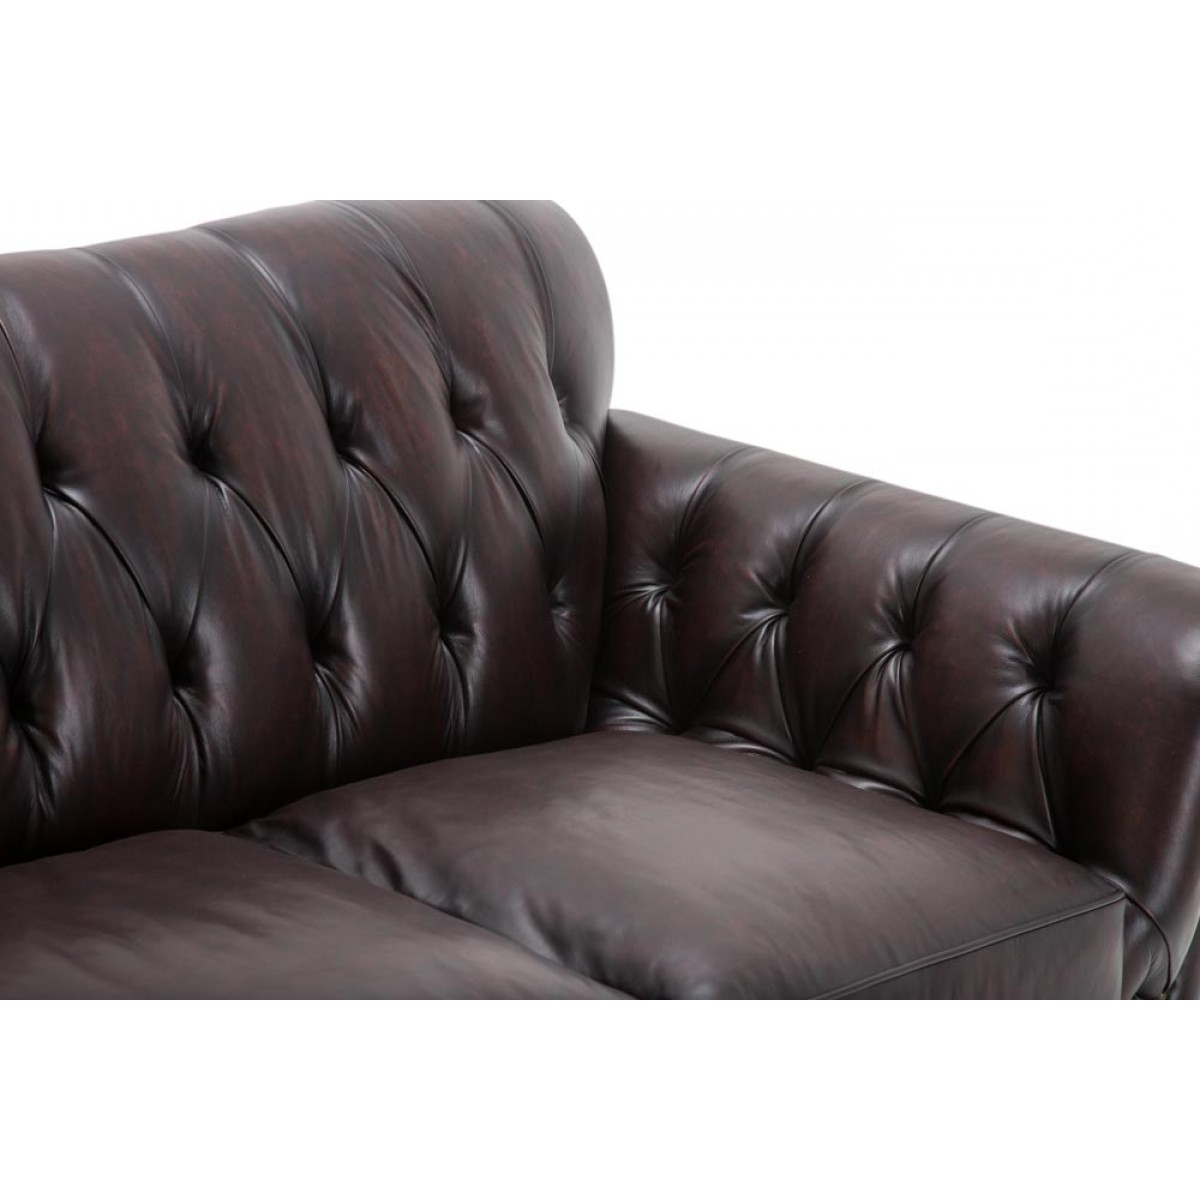 Most Up To Date Aico Michael Amini Freestanding Kensington Leather Love Seat In Merlot For Marcus Oyster 6 Piece Sectionals With Power Headrest And Usb (View 9 of 20)